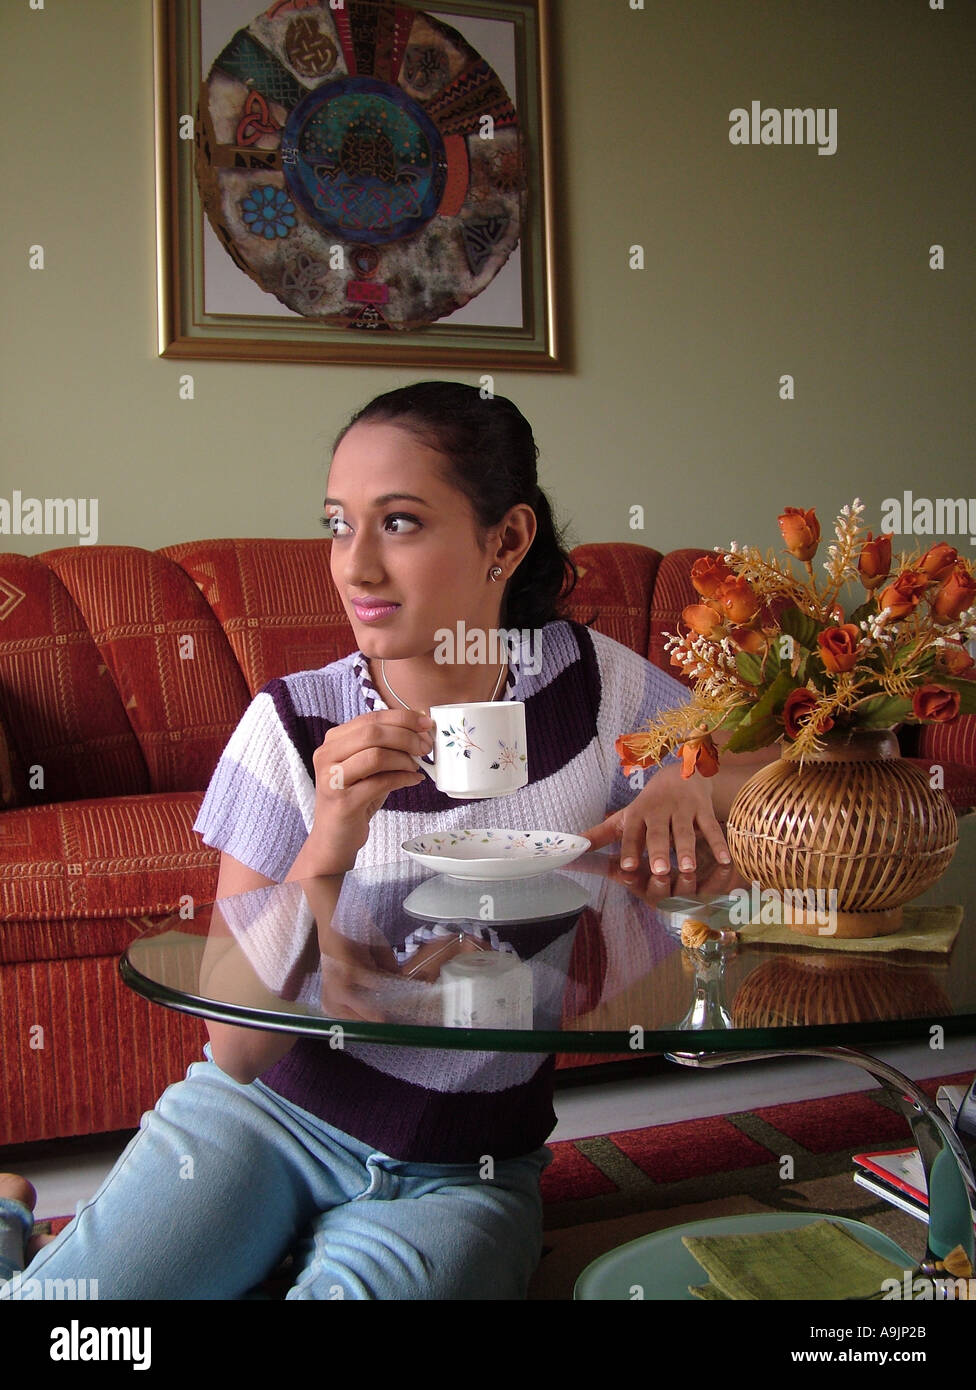 Ang99030 south asian indian girl wearing modern dress looking outside from the house and drinking tea model release 570